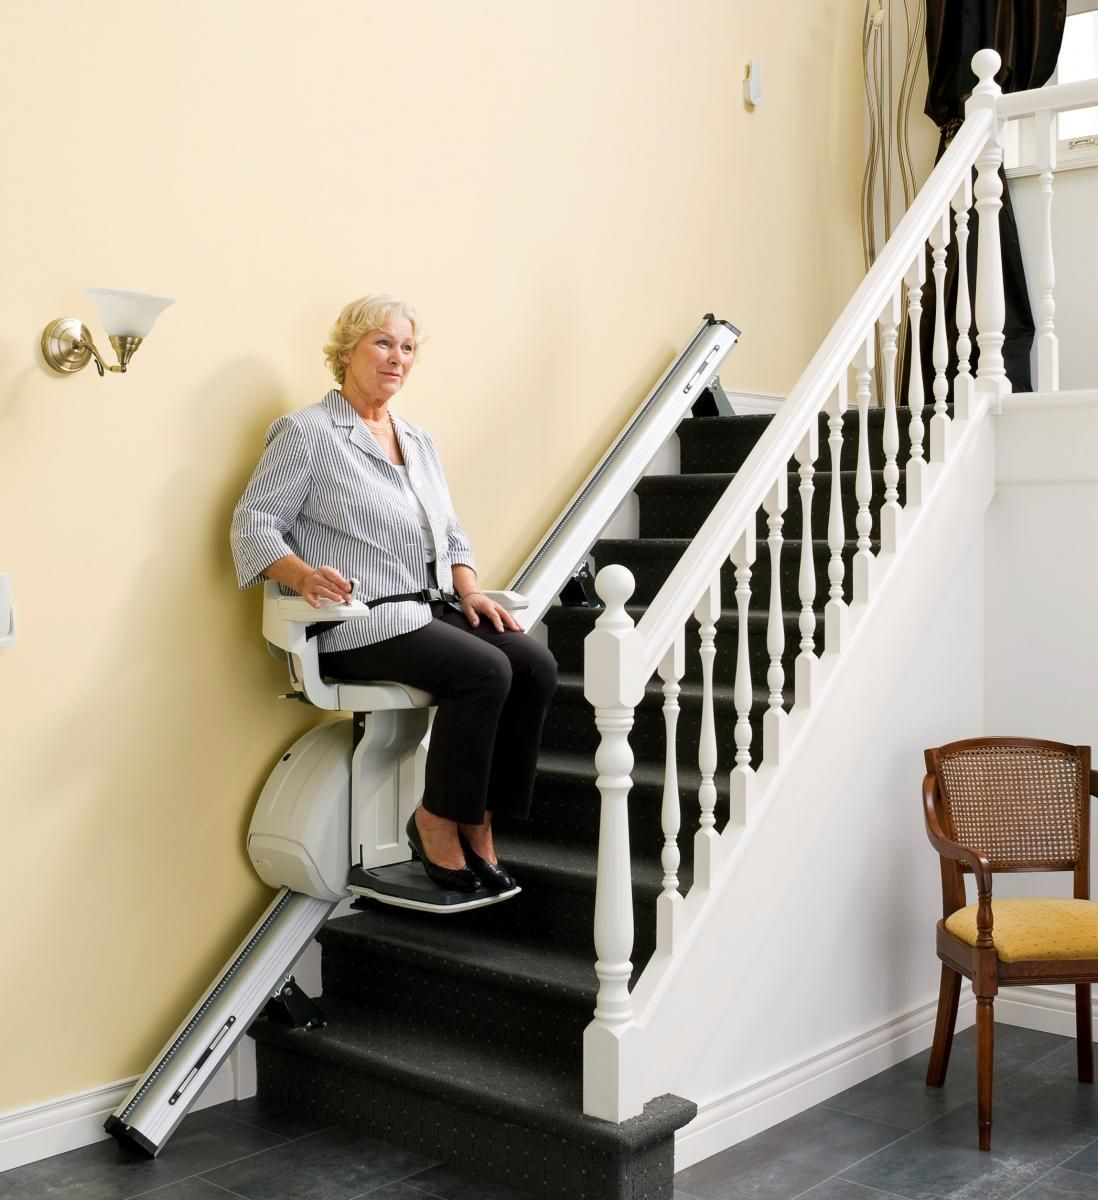 Nice Stair Chair Designs And Styles